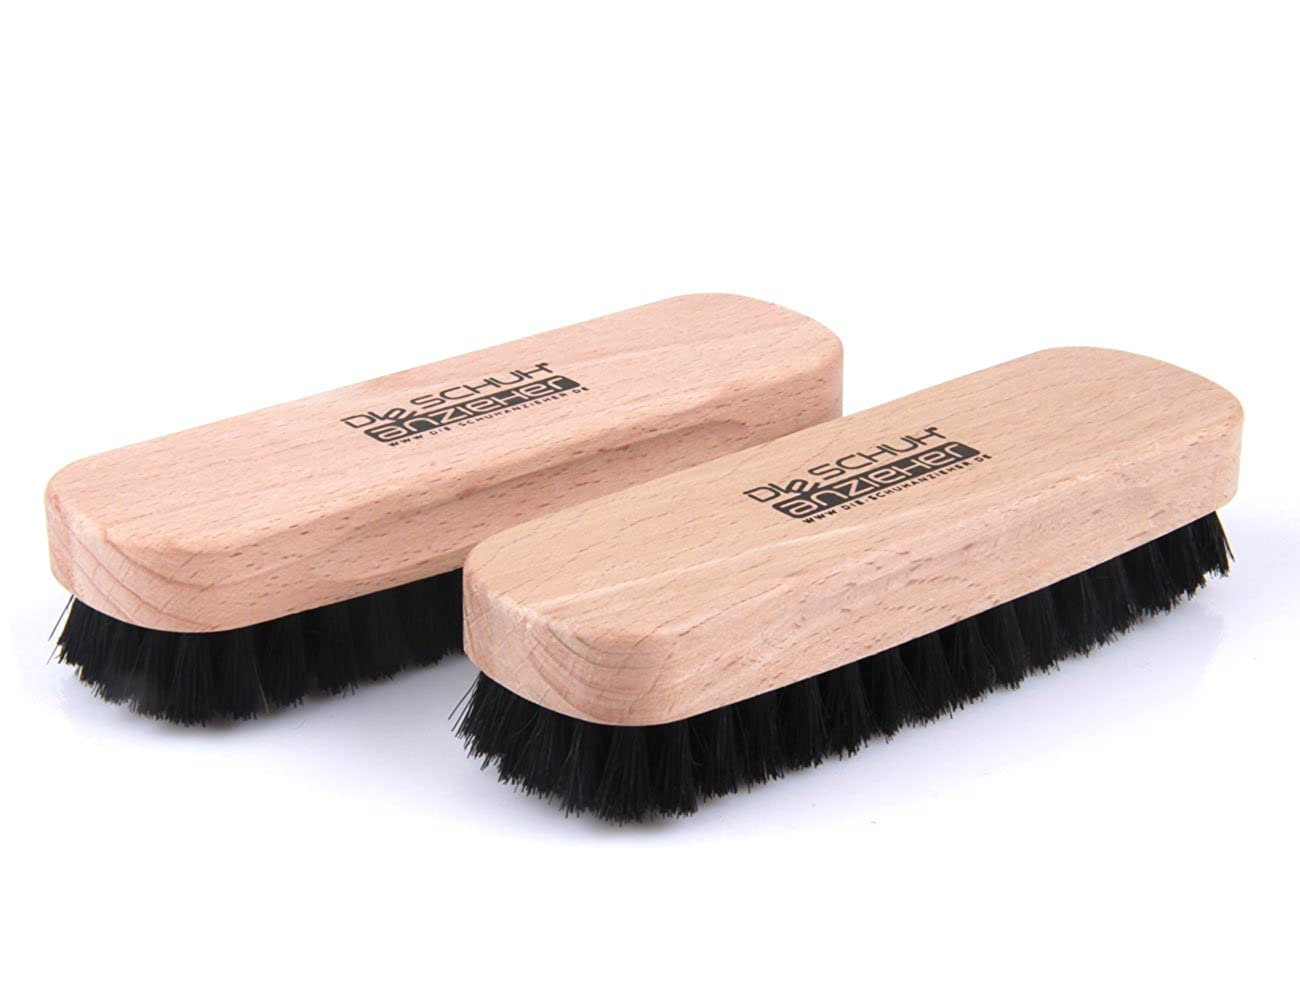 2 Pieces Set – Beechwood Shoe Brush with natural Bristles – for Cleaning and Polishing z2345